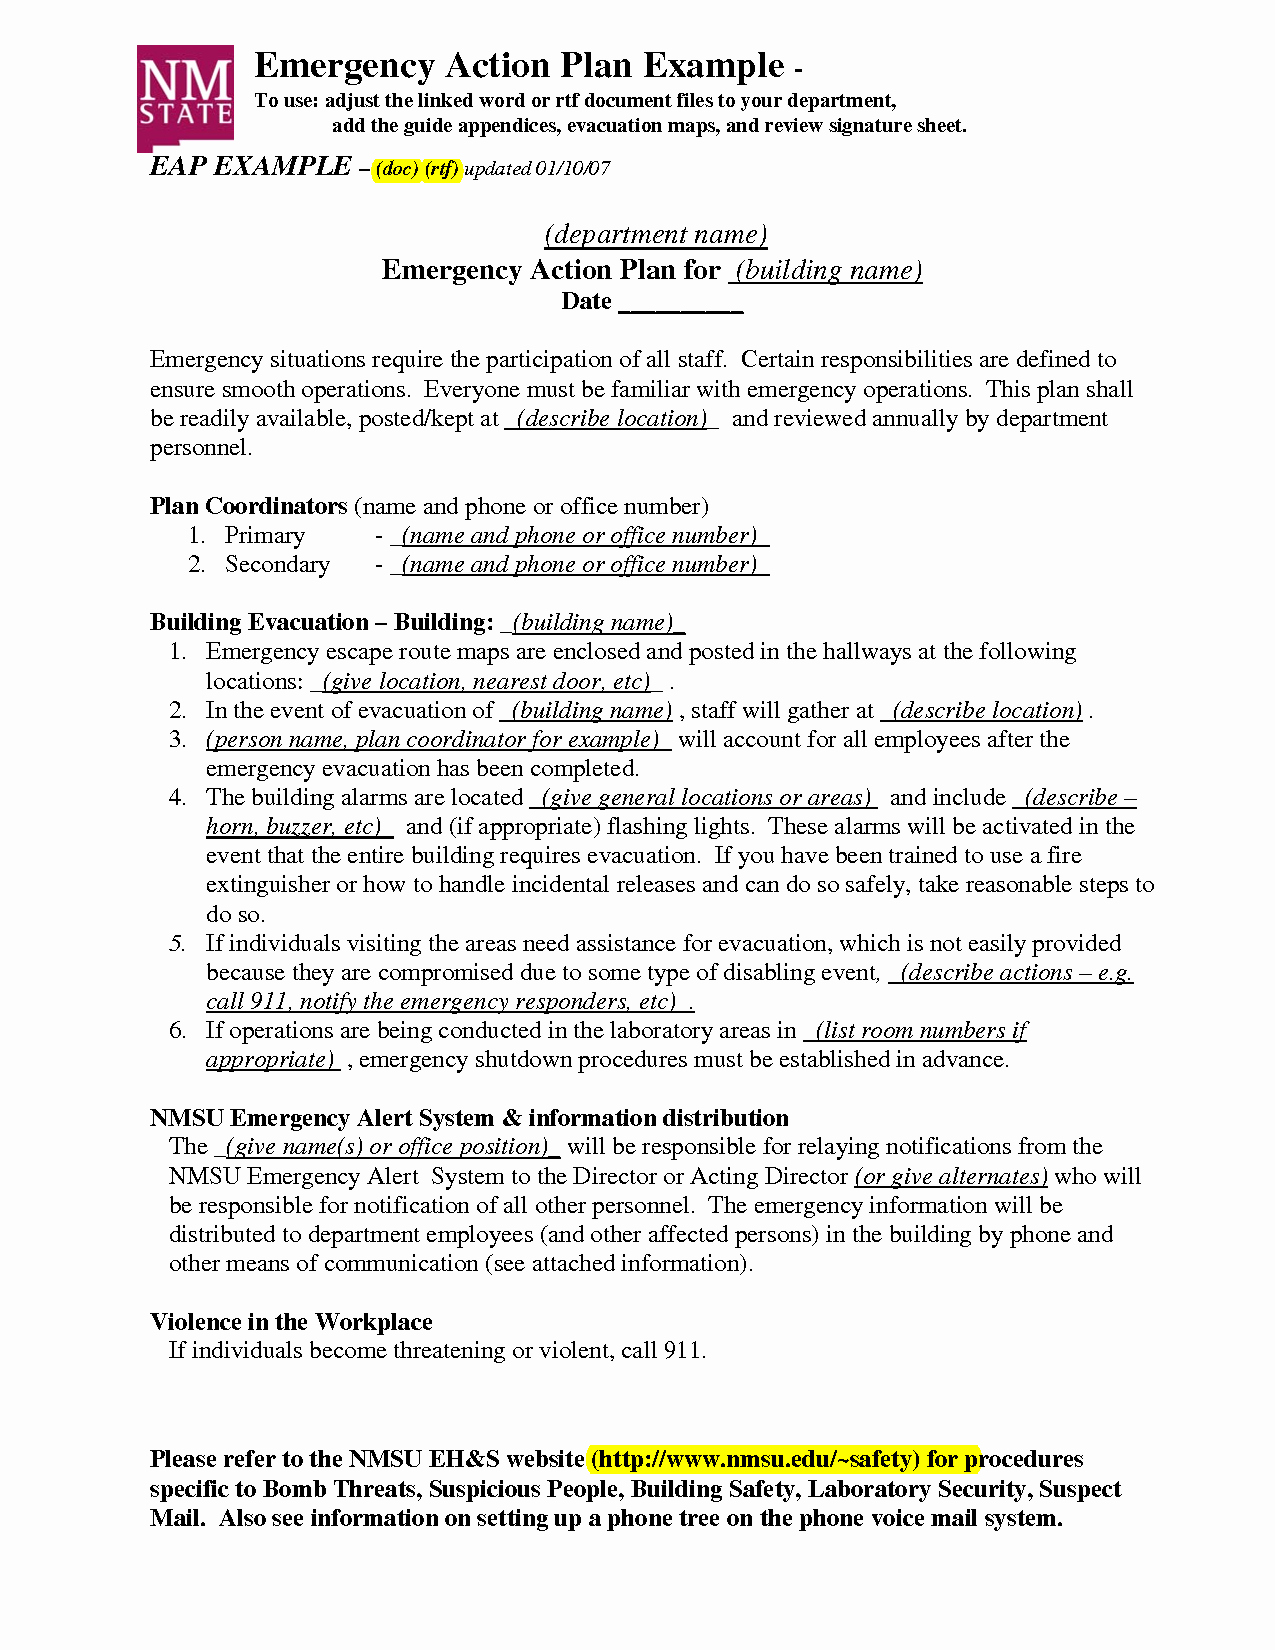 Emergency Action Plans Examples New Emergency Action Plan Template